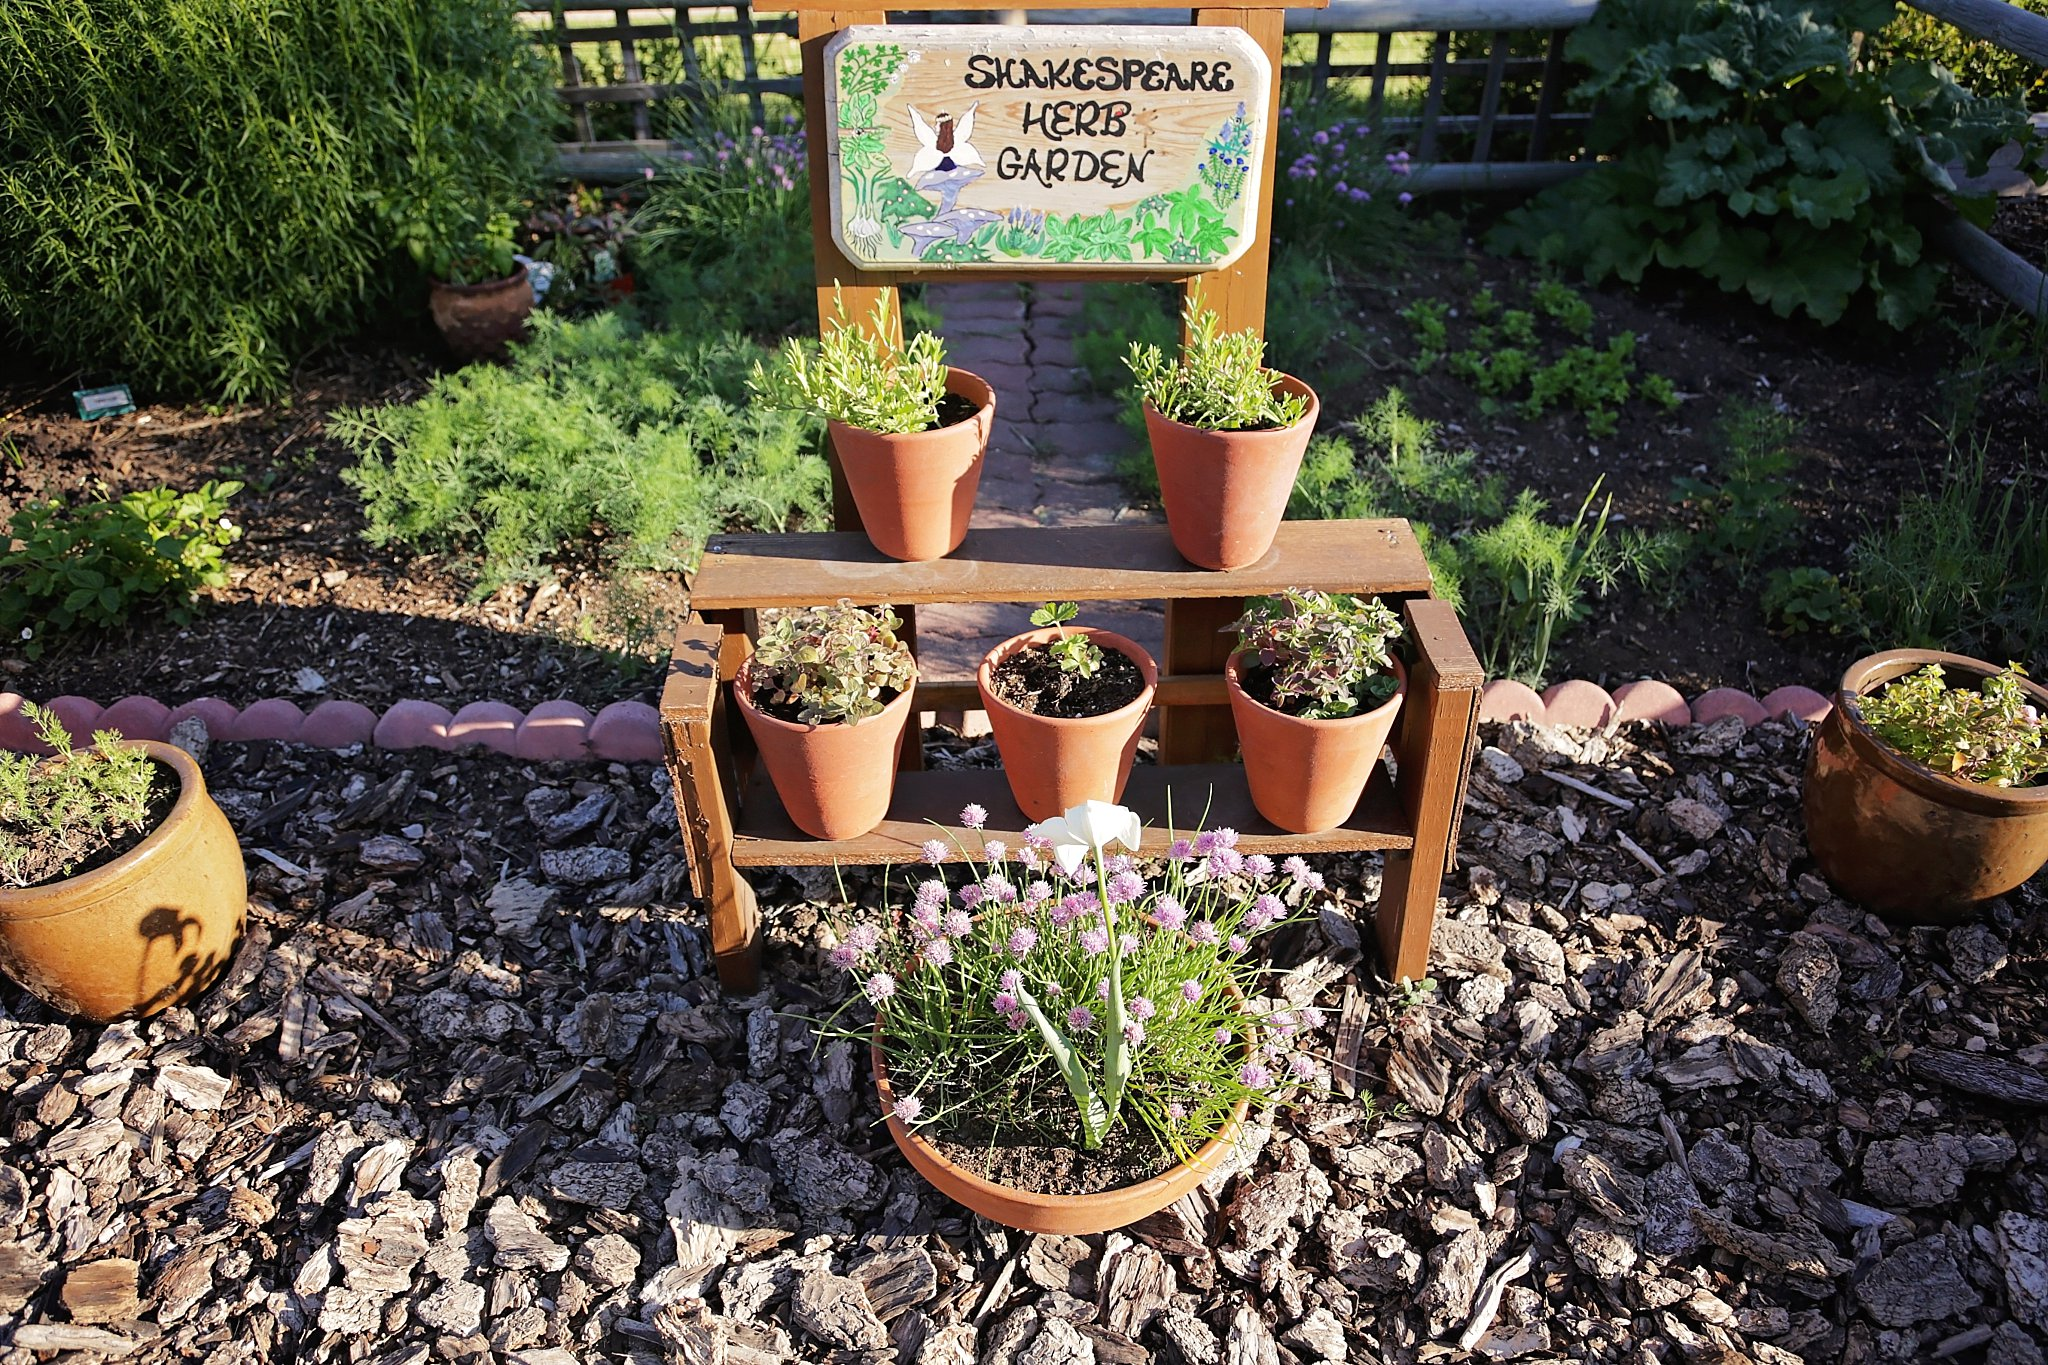 Shakespeare herb garden